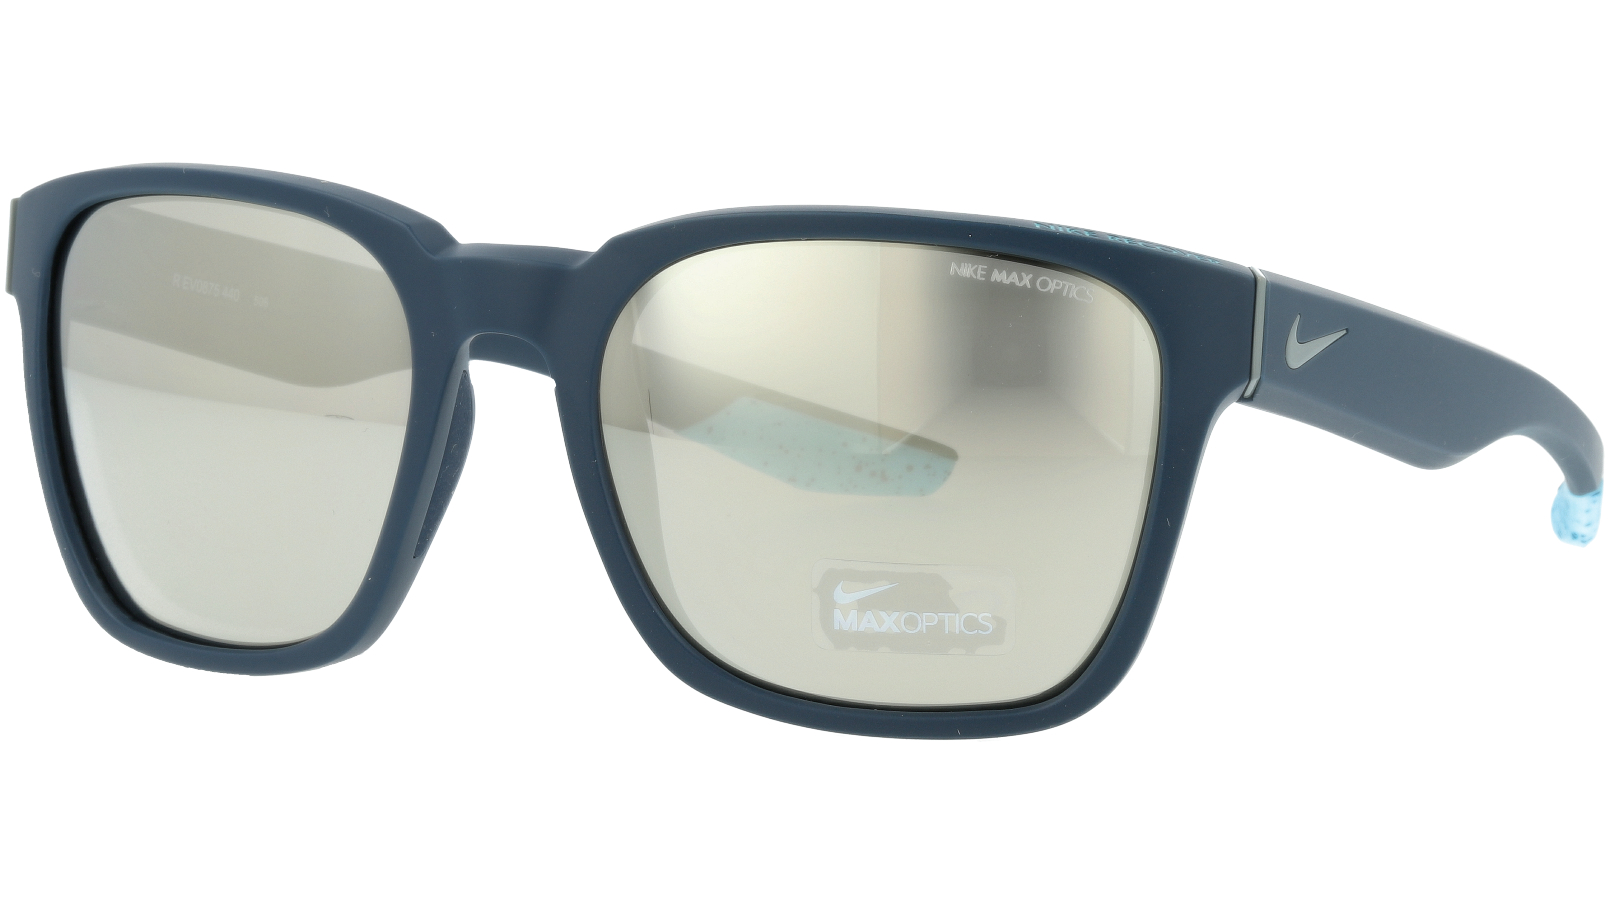 NIKE EV0875 440 58 BLUE Sunglasses